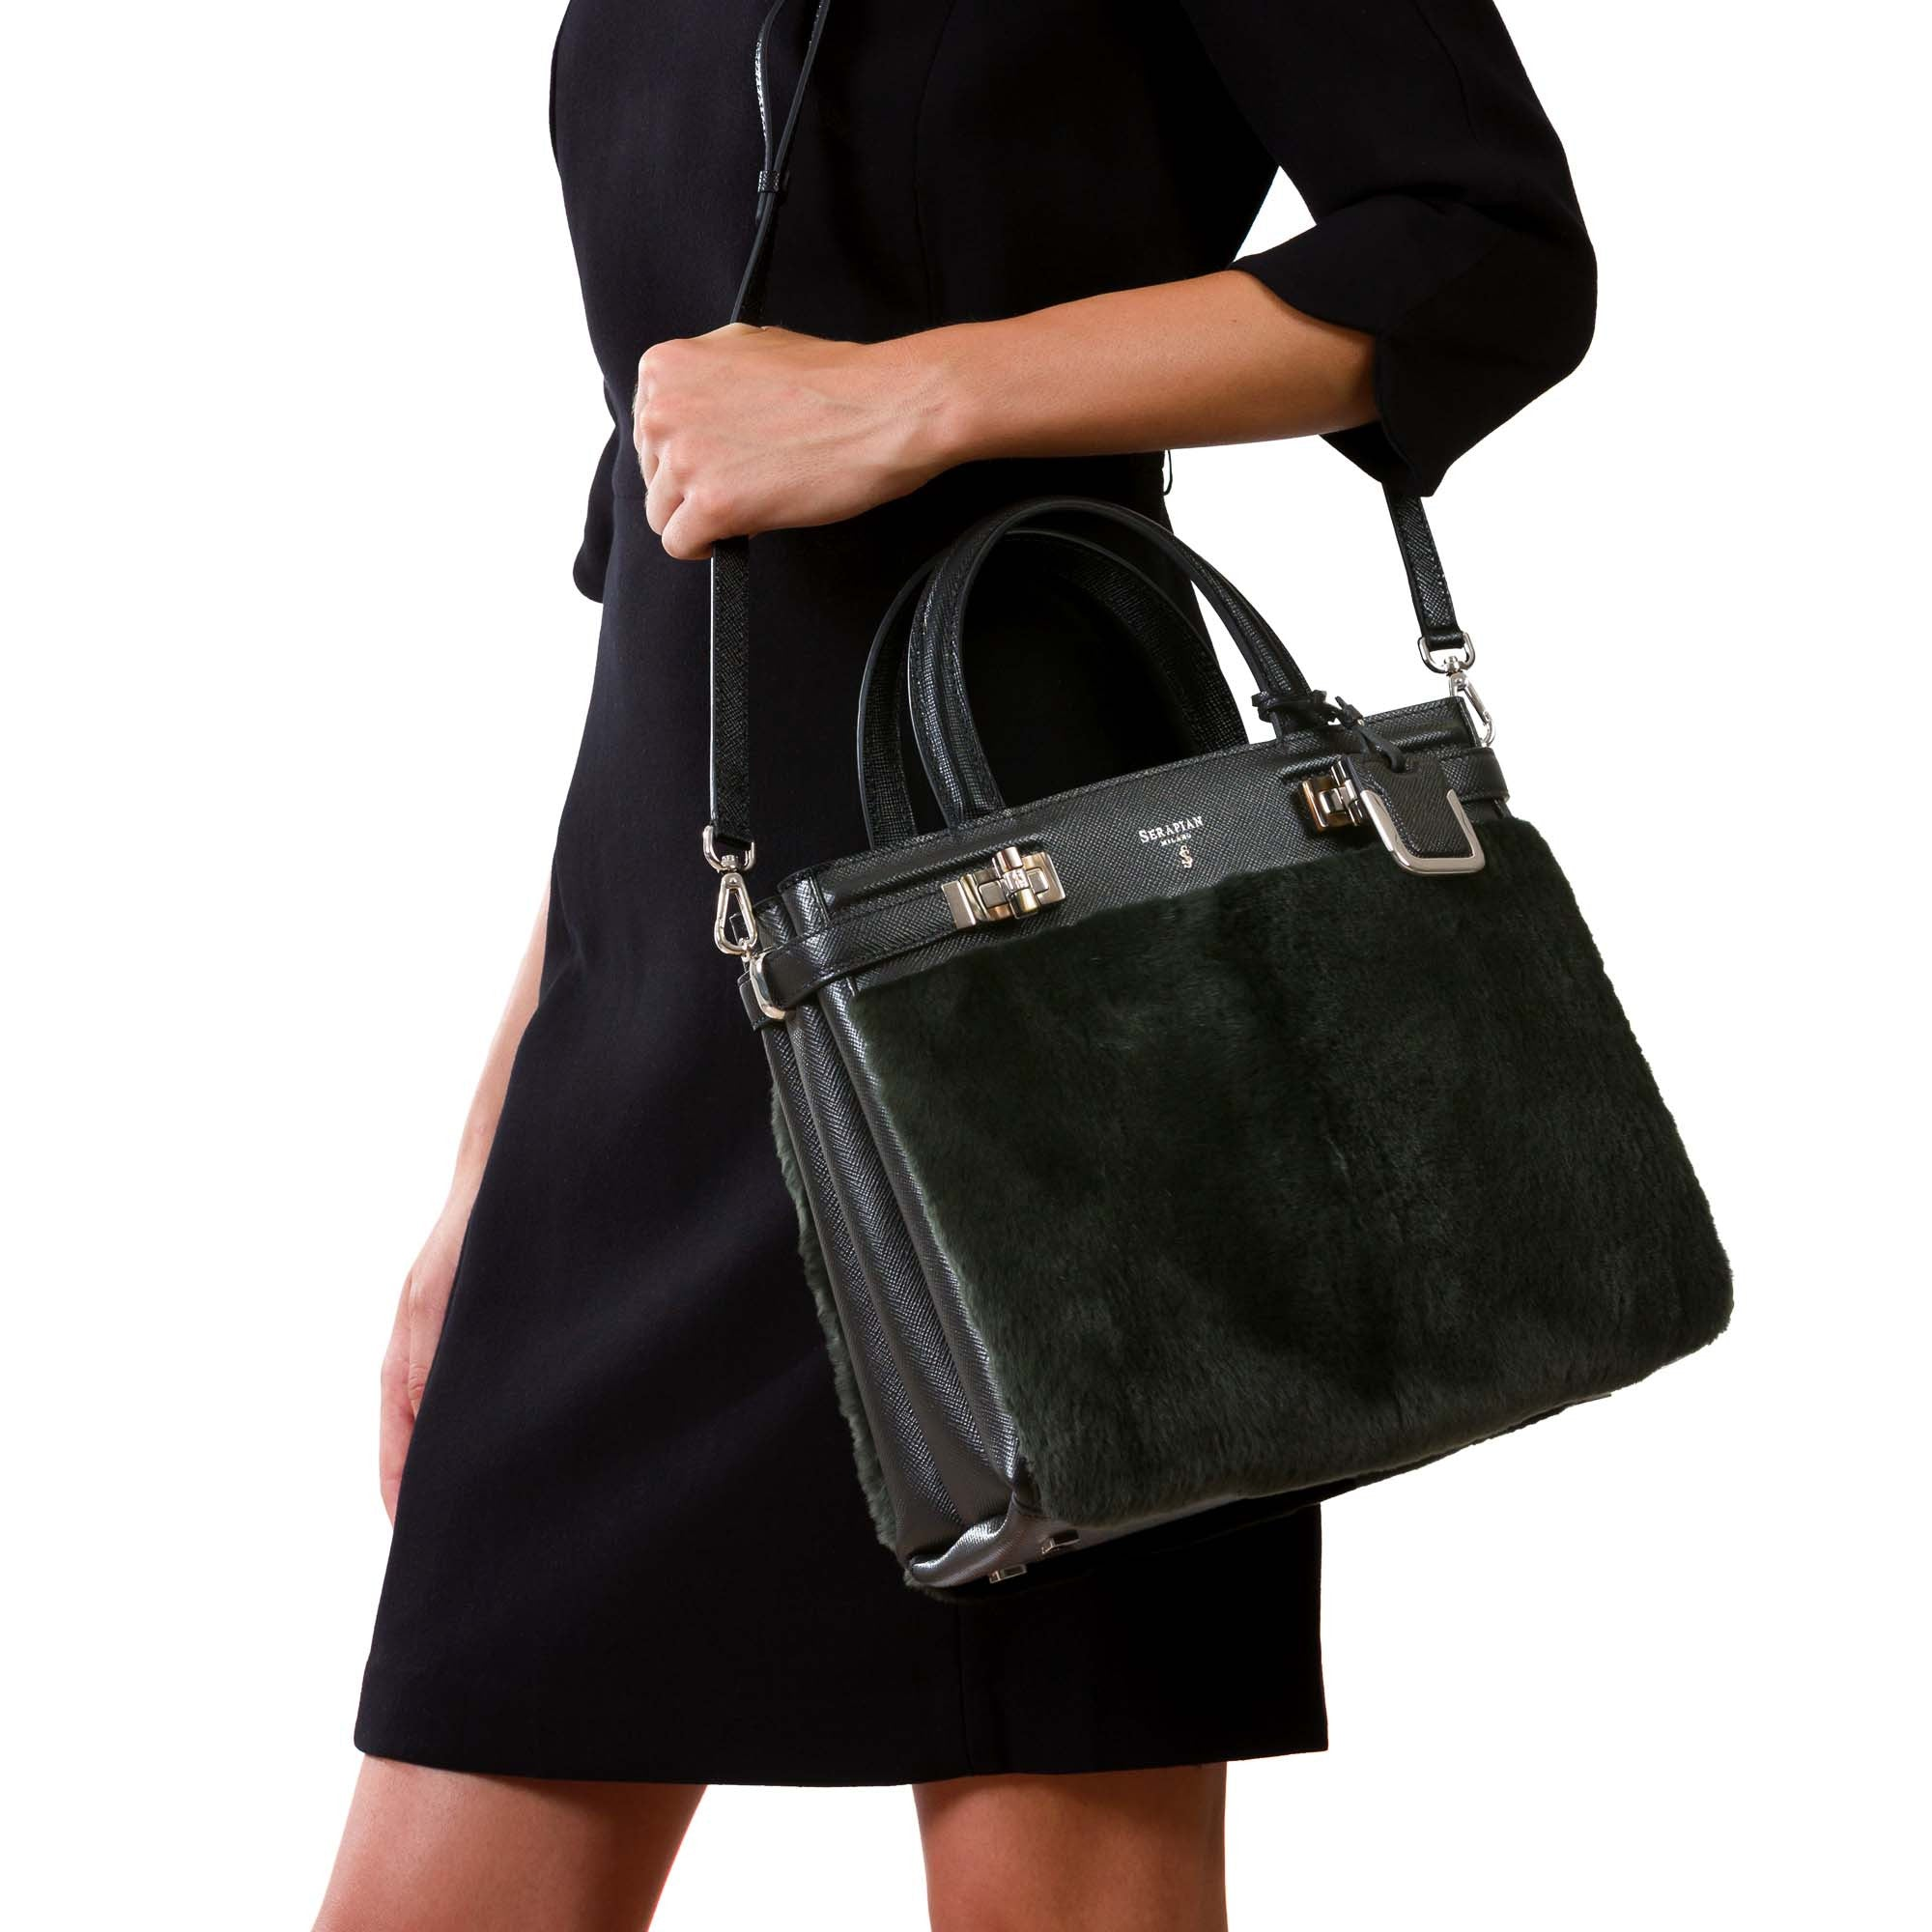 Small Melinè bag Evolution/Beaver - Anthracite Grey/Black